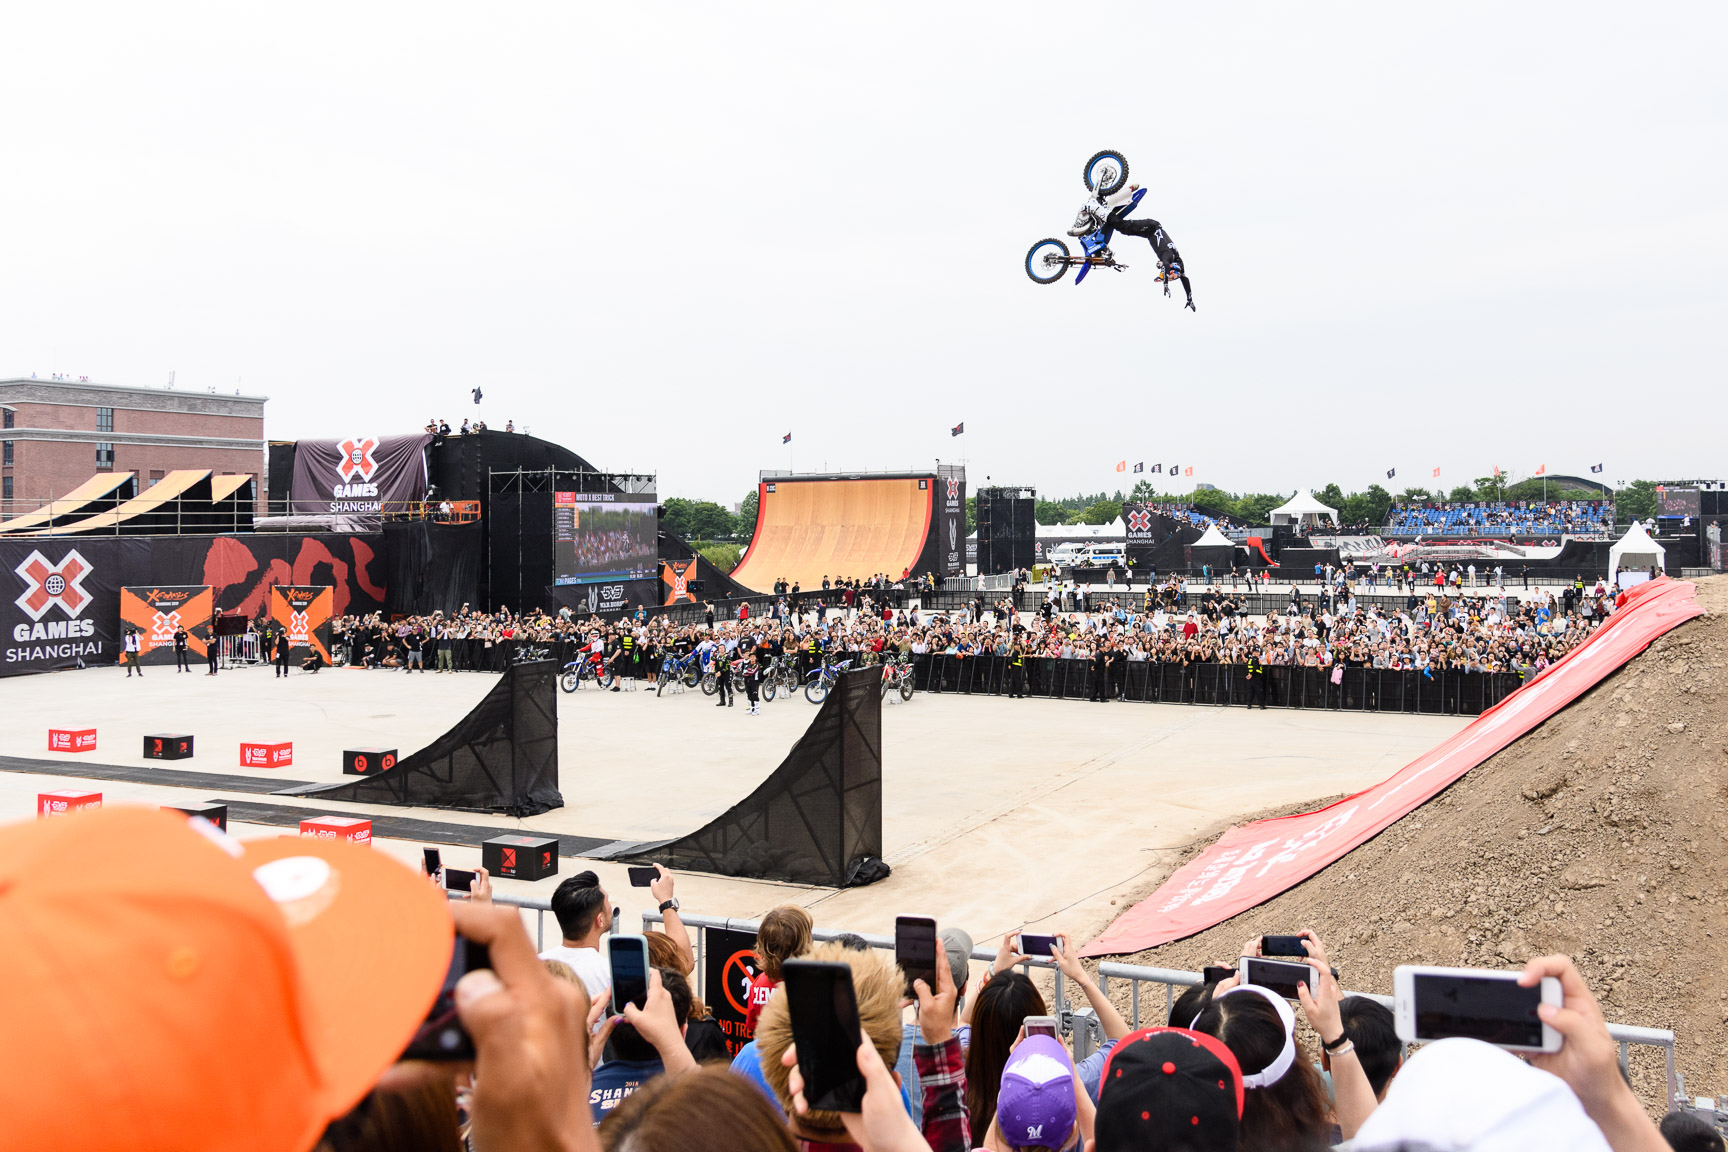 X Games Shanghai 2019: Tom Pages